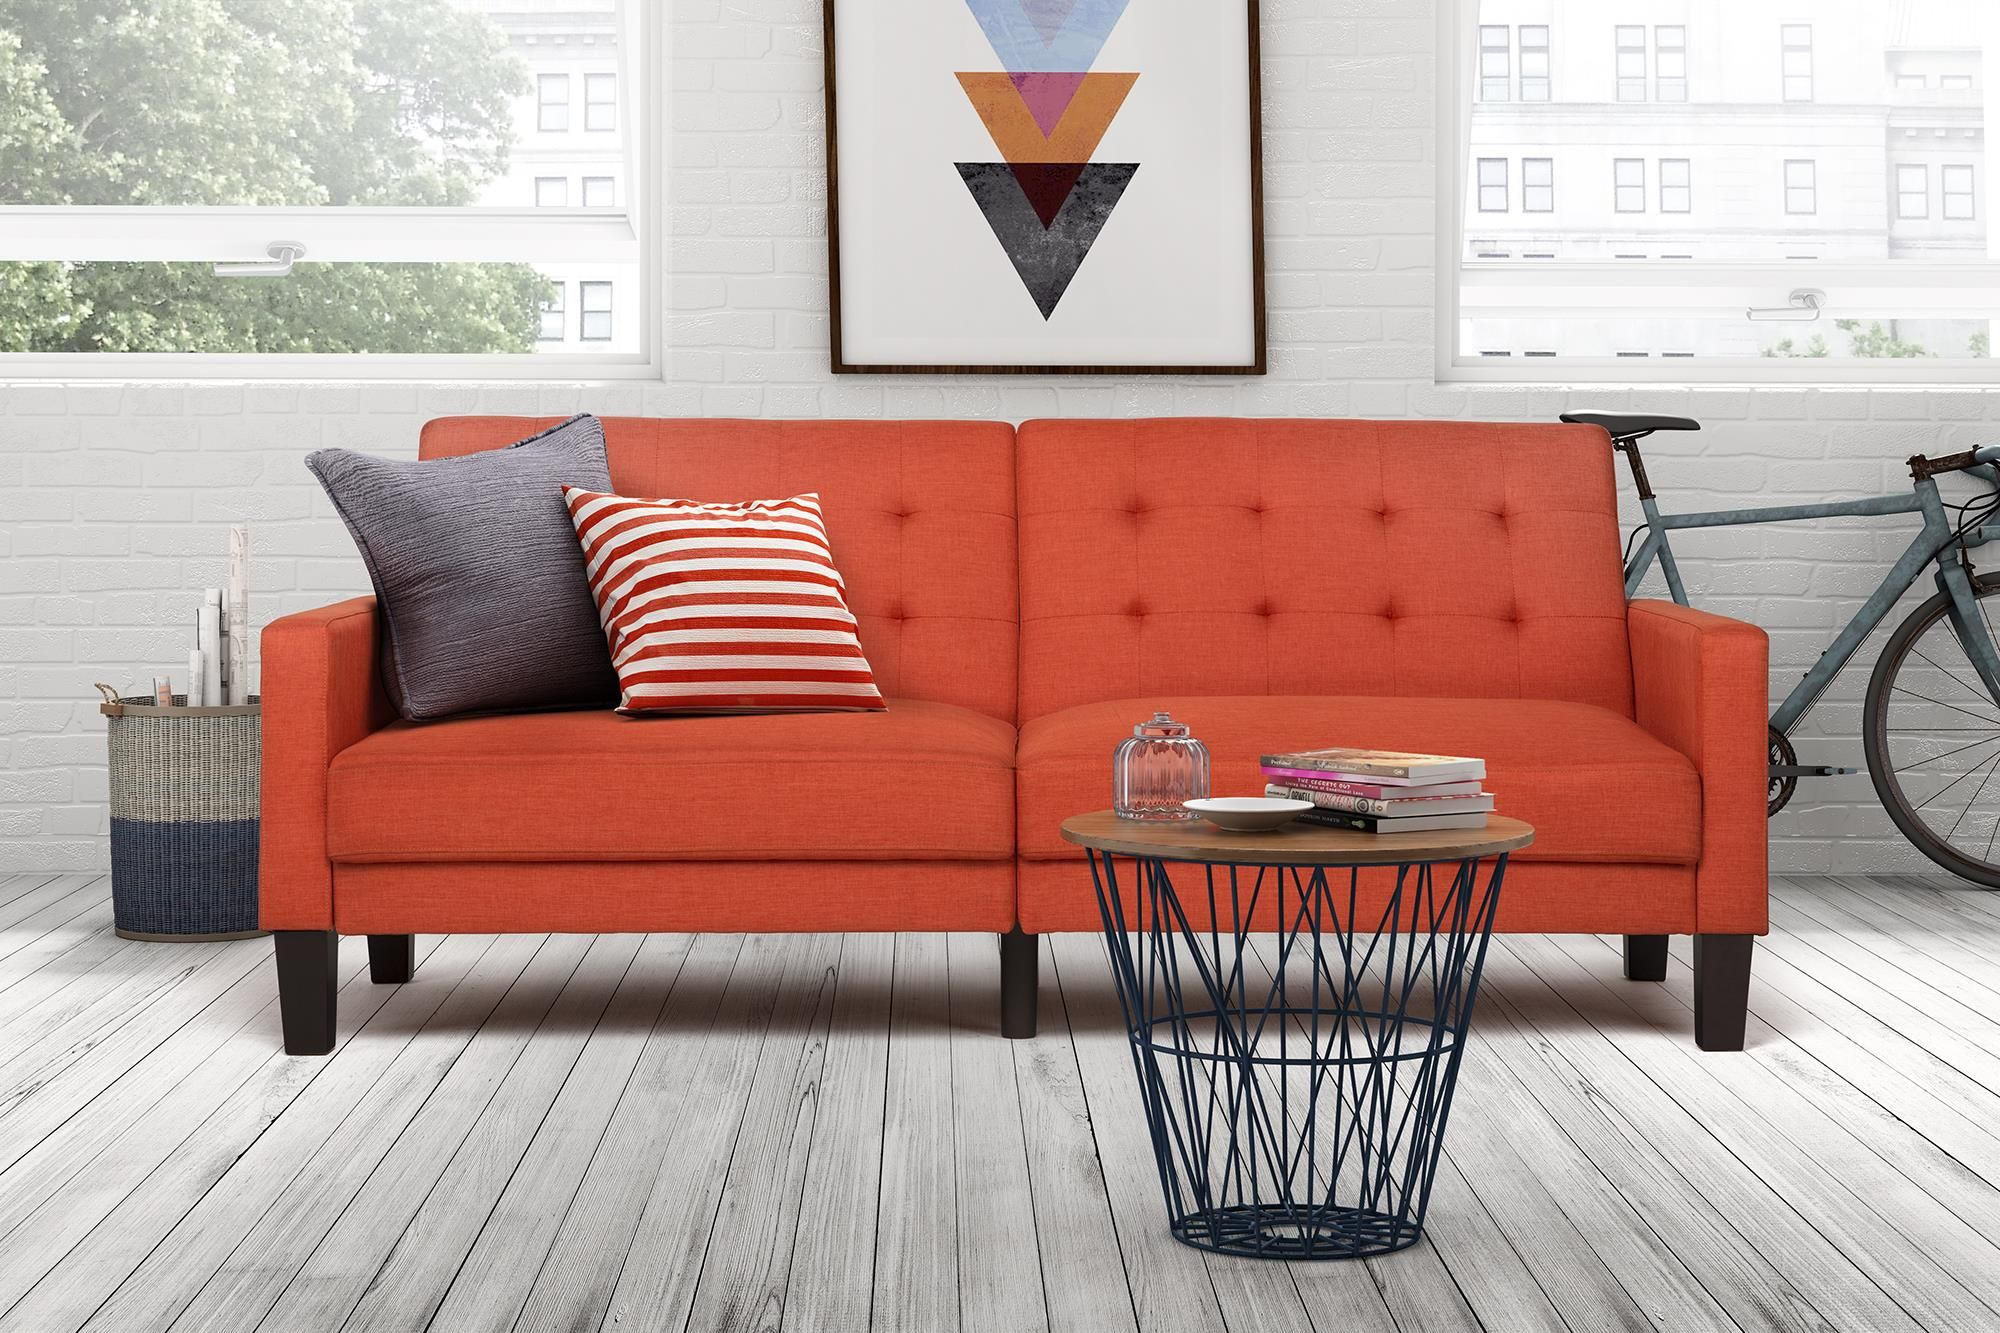 Elegance class and sophistication The Paris Futon helps in